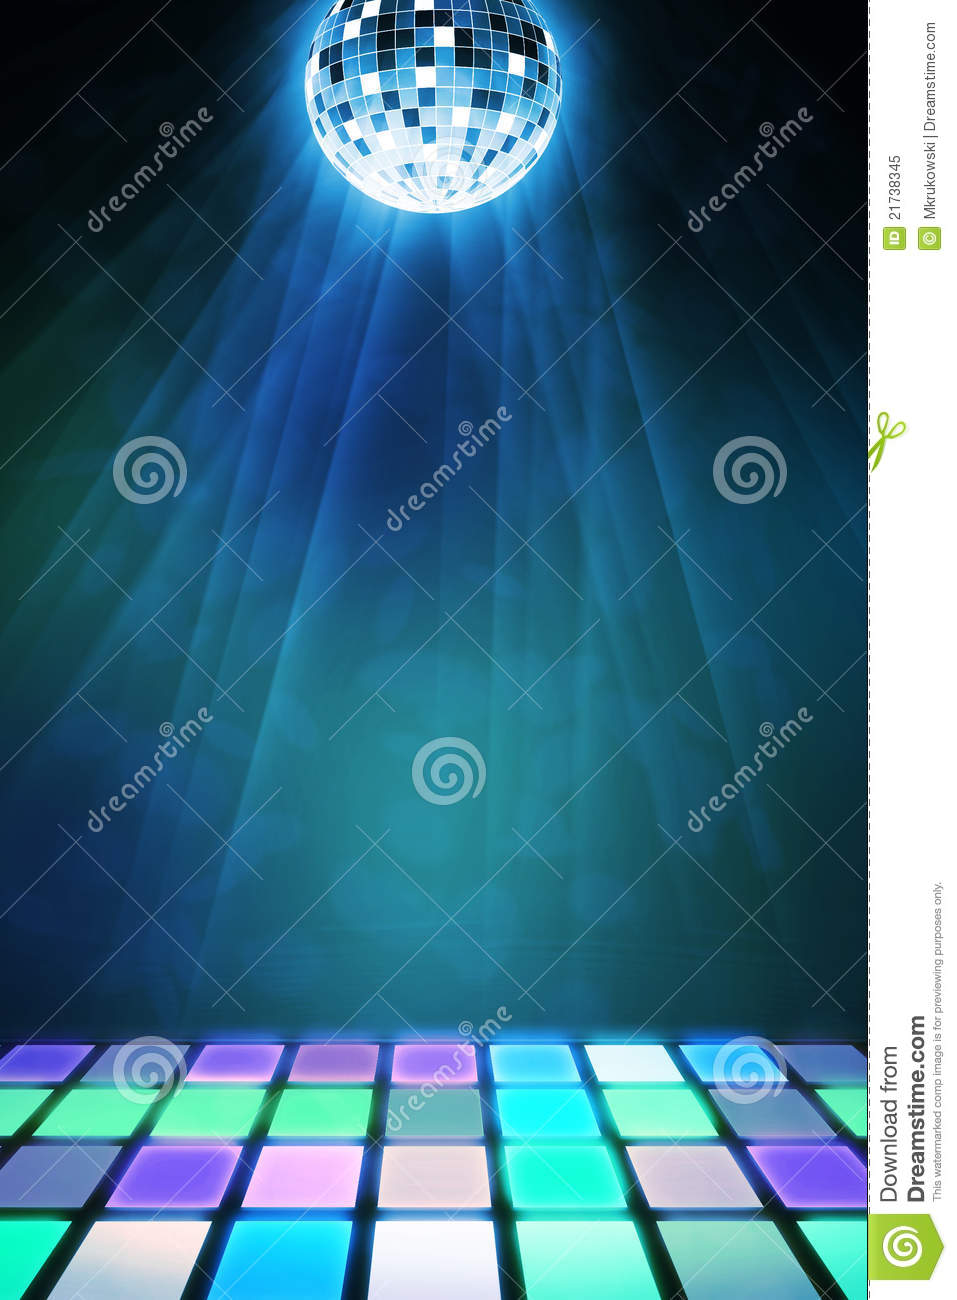 Dancefloor Background Royalty Free Stock Photo Image